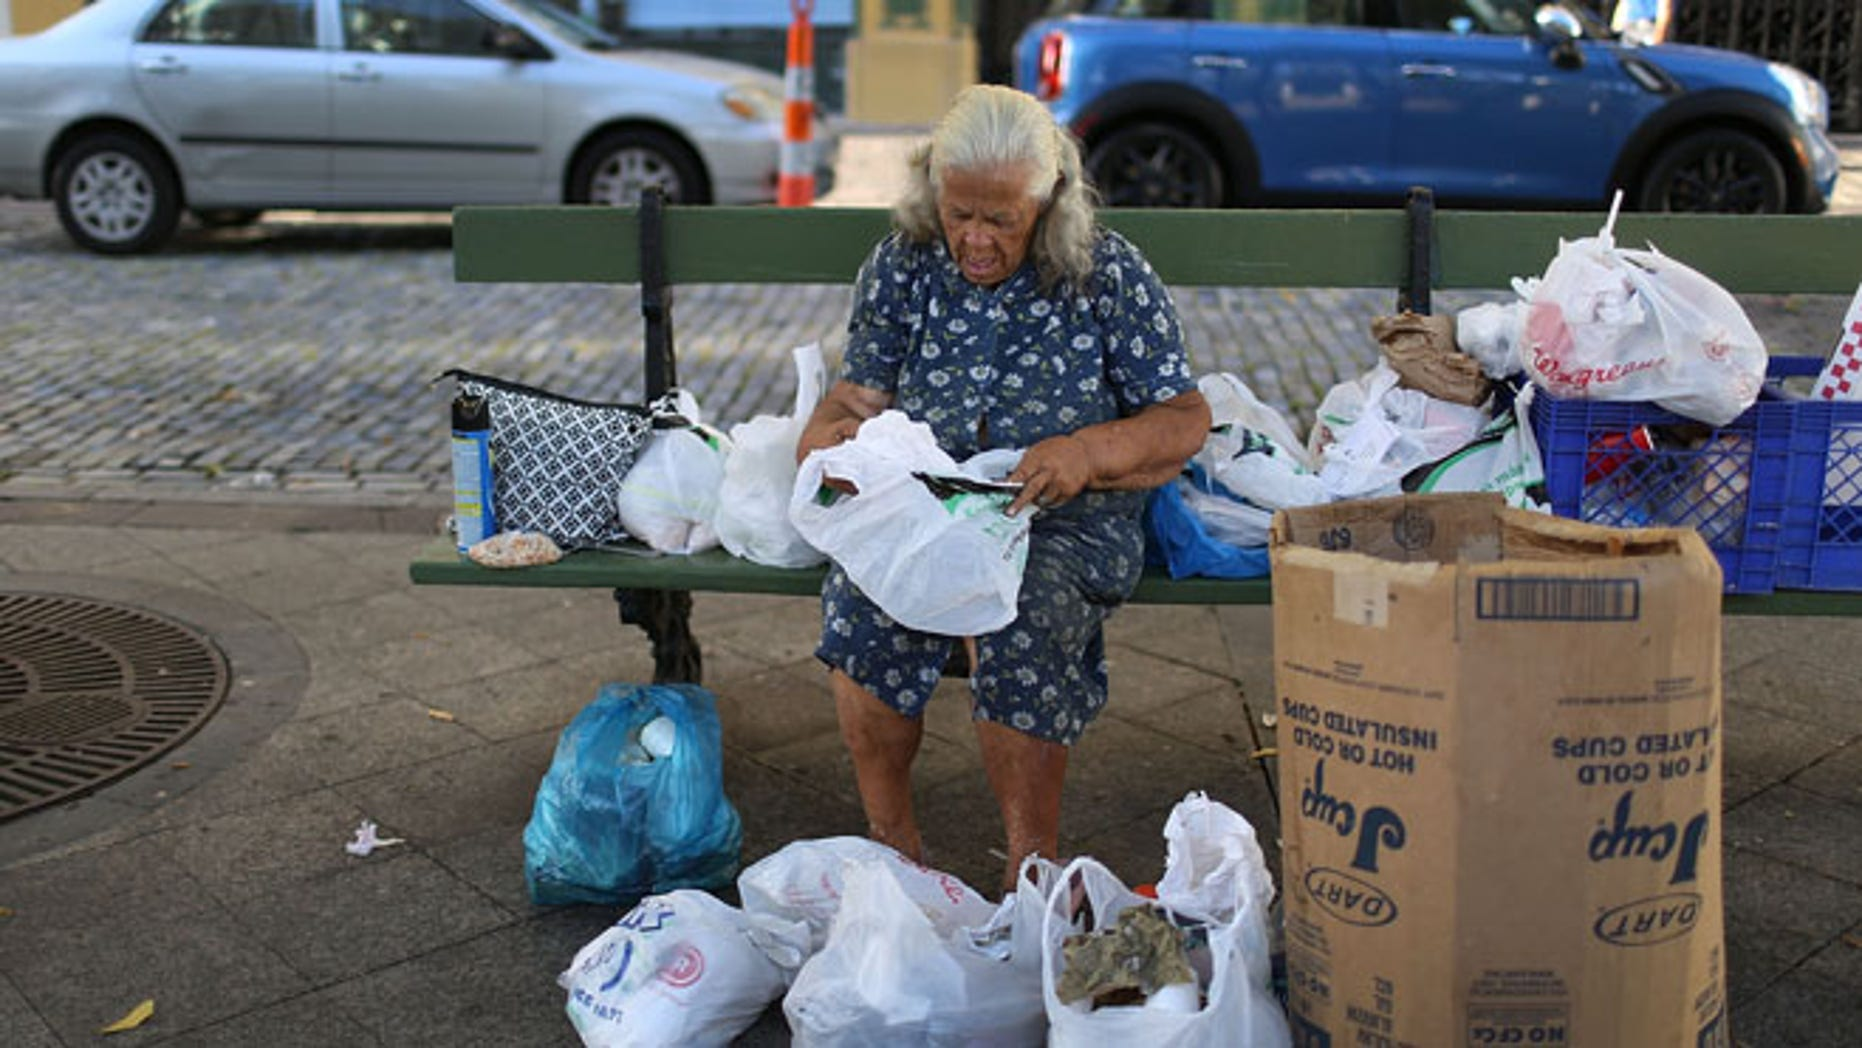 SAN JUAN, PUERTO RICO - JUNE 30:  A woman sorts through her belongings on a park bench a day after the speech Puerto Rican Governor Alejandro Garcia Padilla gave regarding the government's $72 billion debt on June 30, 2015 in San Juan, Puerto Rico.  The Governor said in his speech that the people will have to sacrifice and share in the responsibilities for pulling the island out of debt.  (Photo by Joe Raedle/Getty Images)